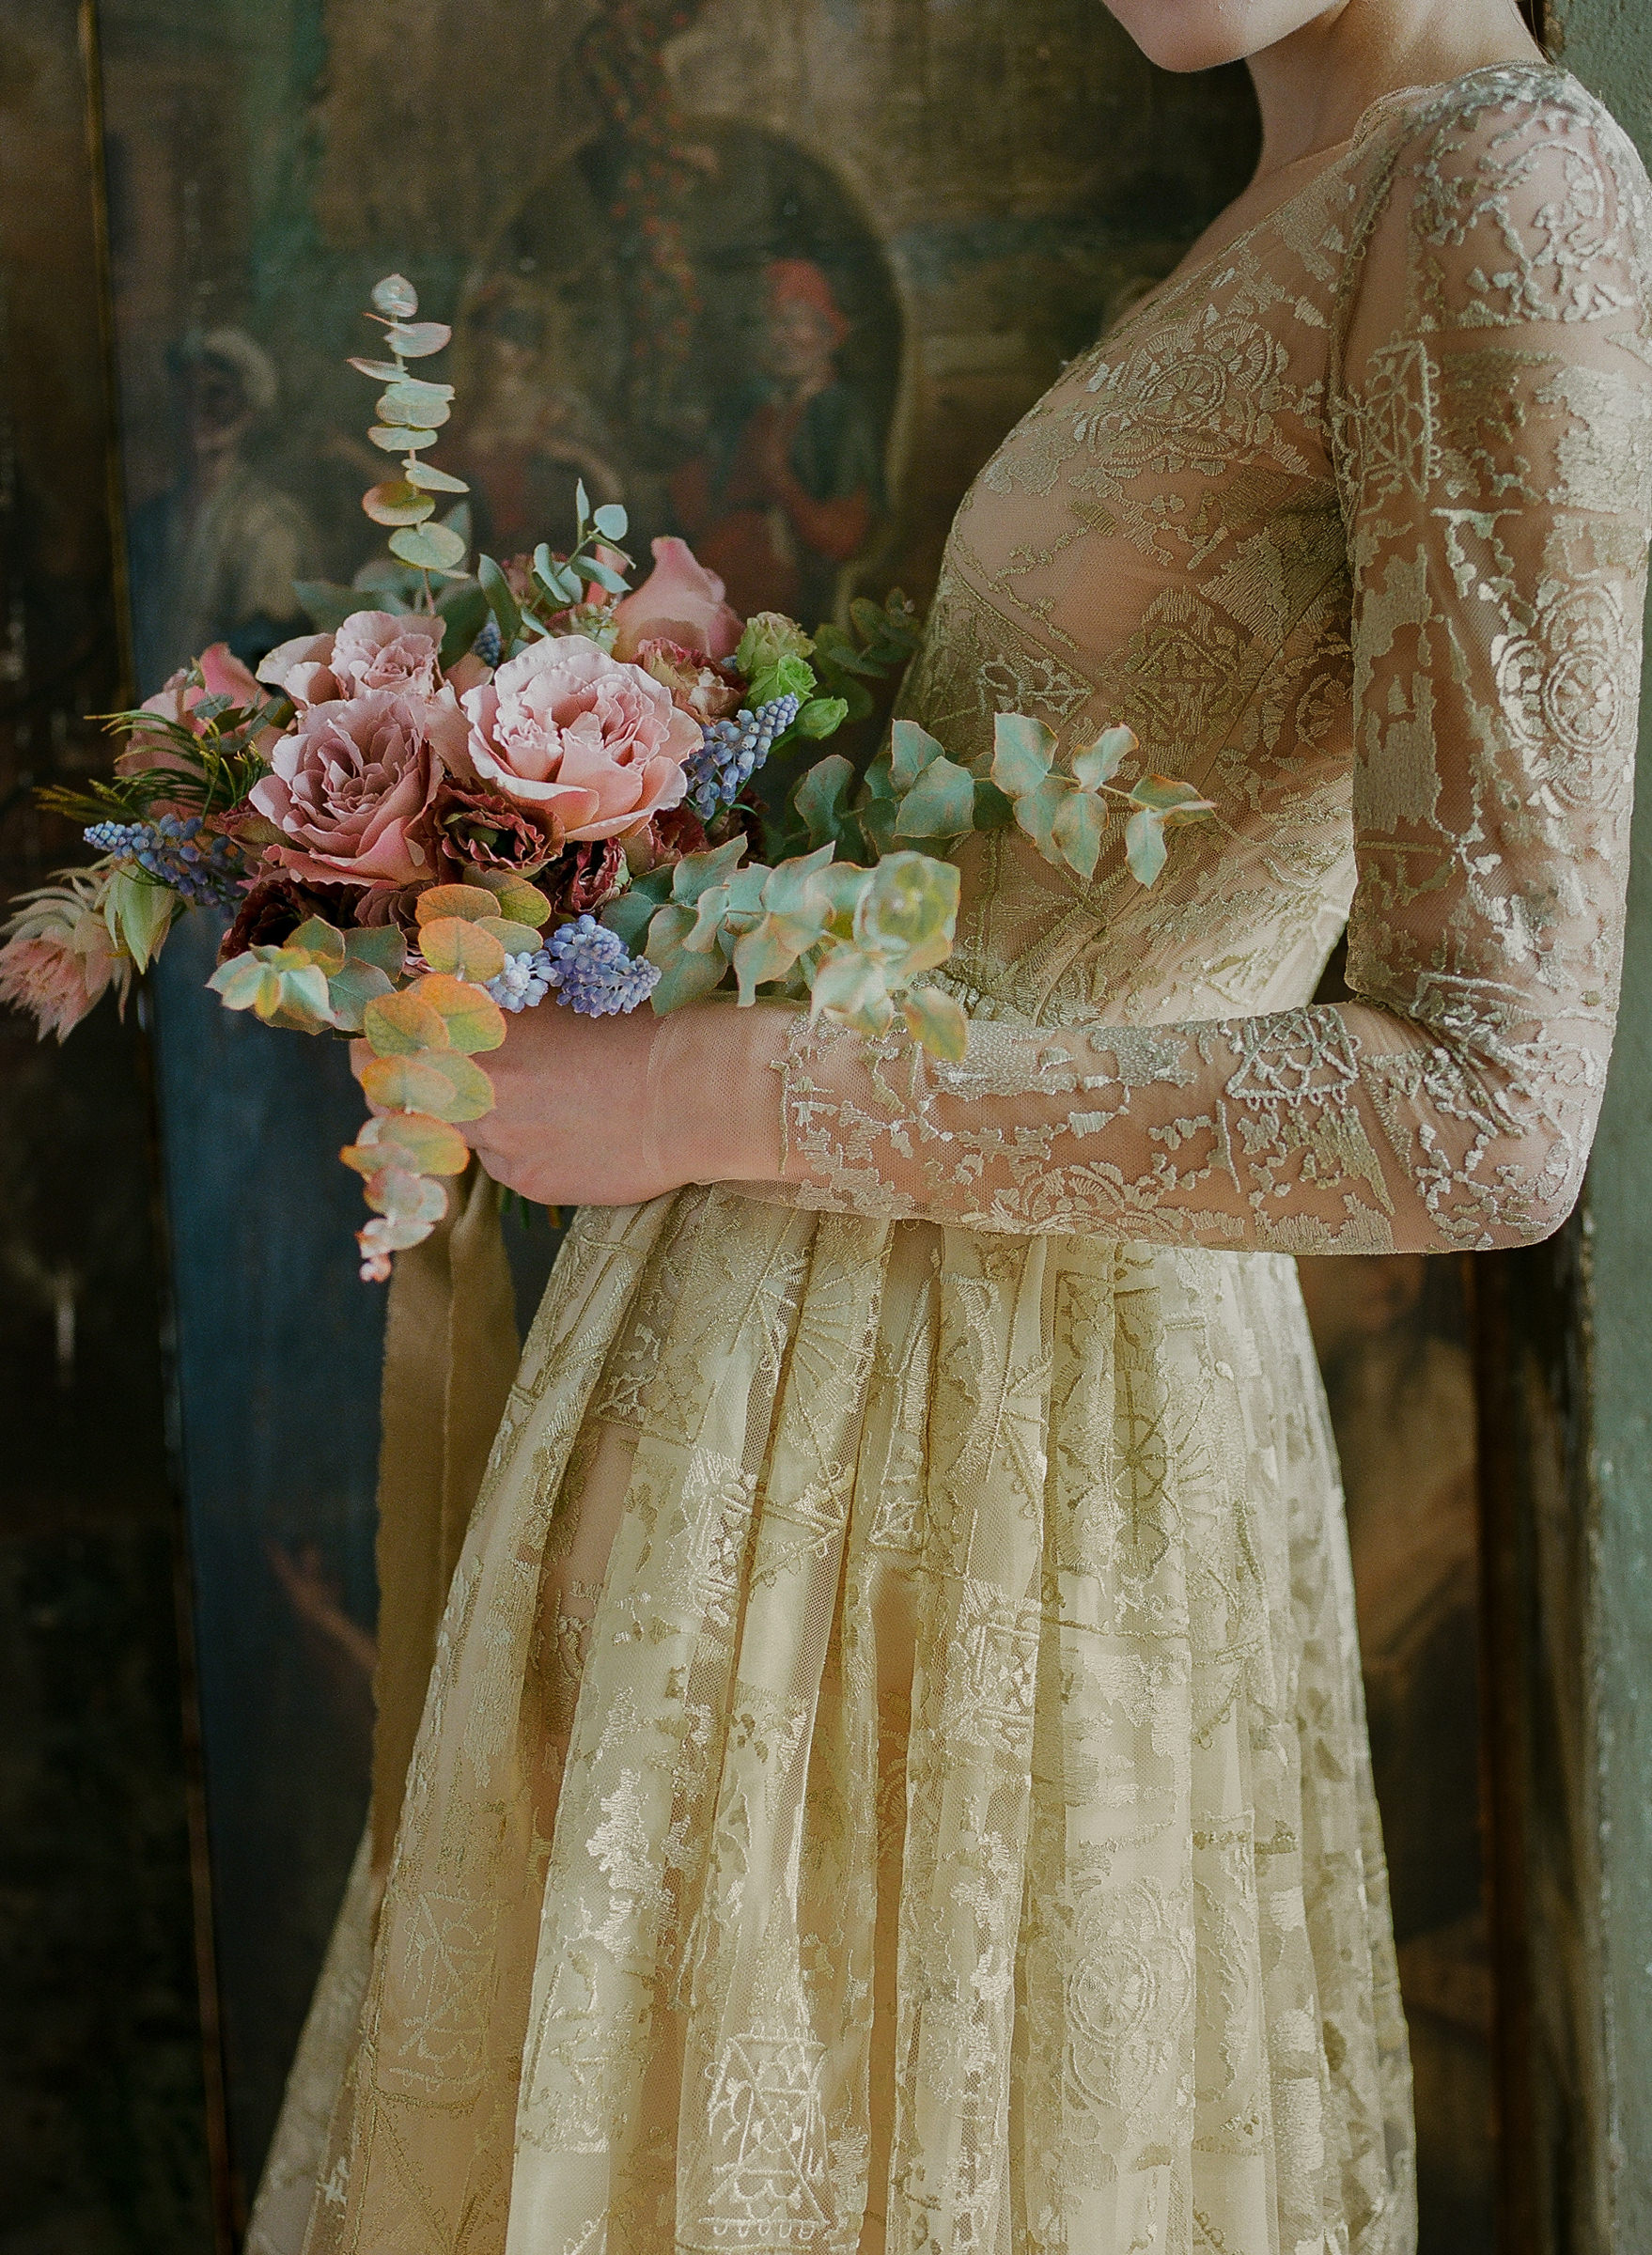 Bride in metallic lace gown with antique rose bouqet by Corbin Gurkin